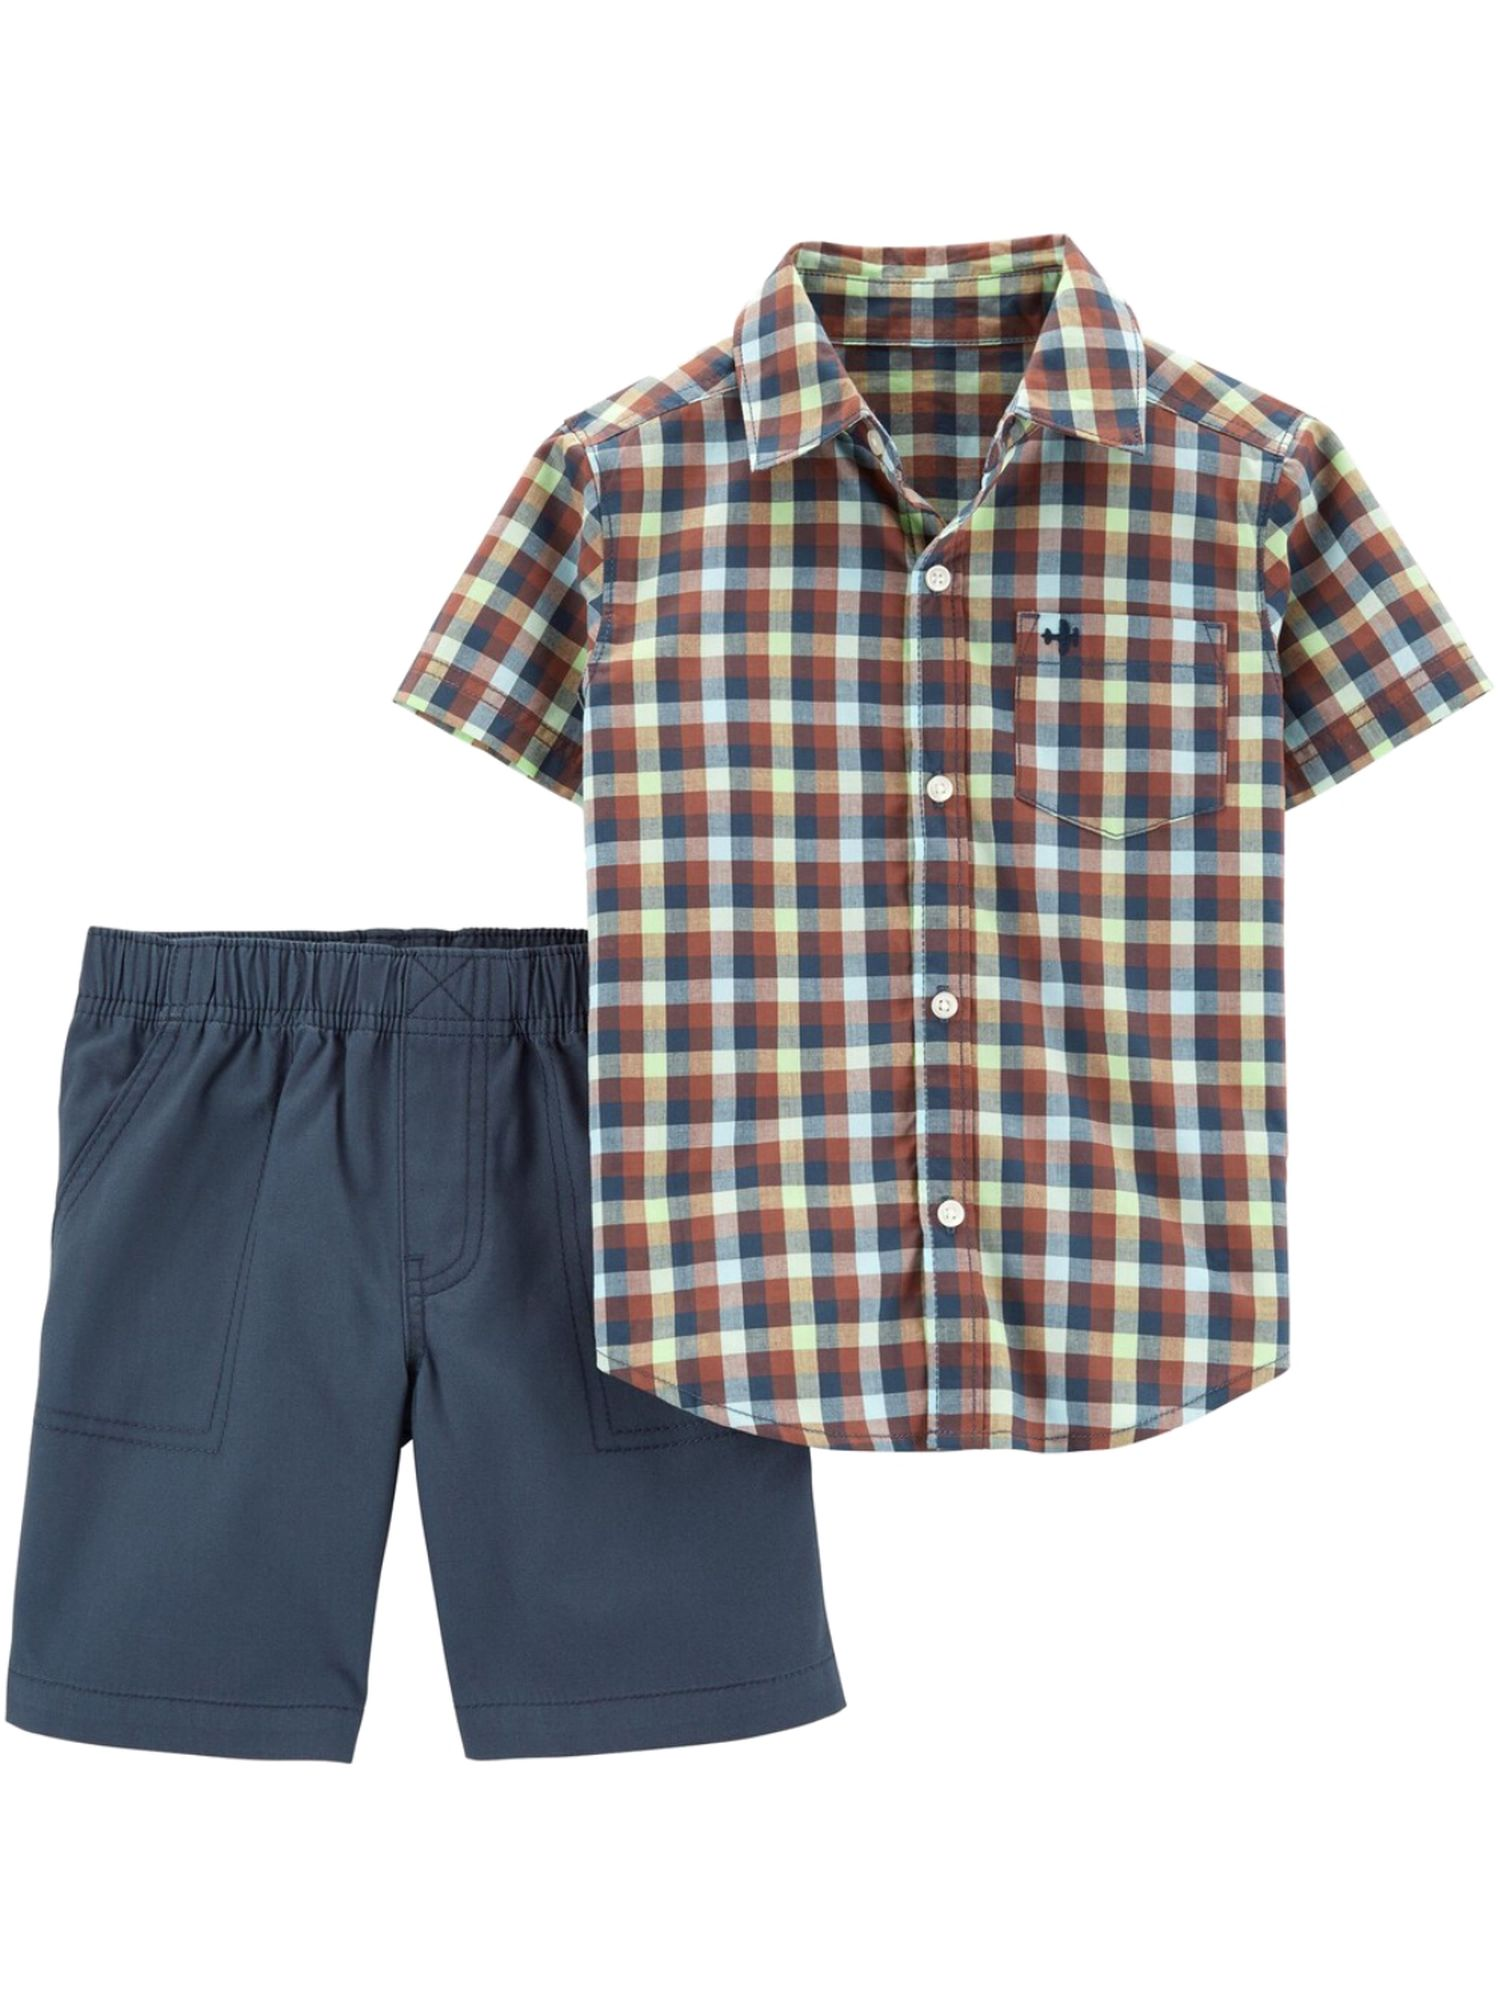 Baby Kenneth cole shorts polo shirt set 24 MO months boys NEW